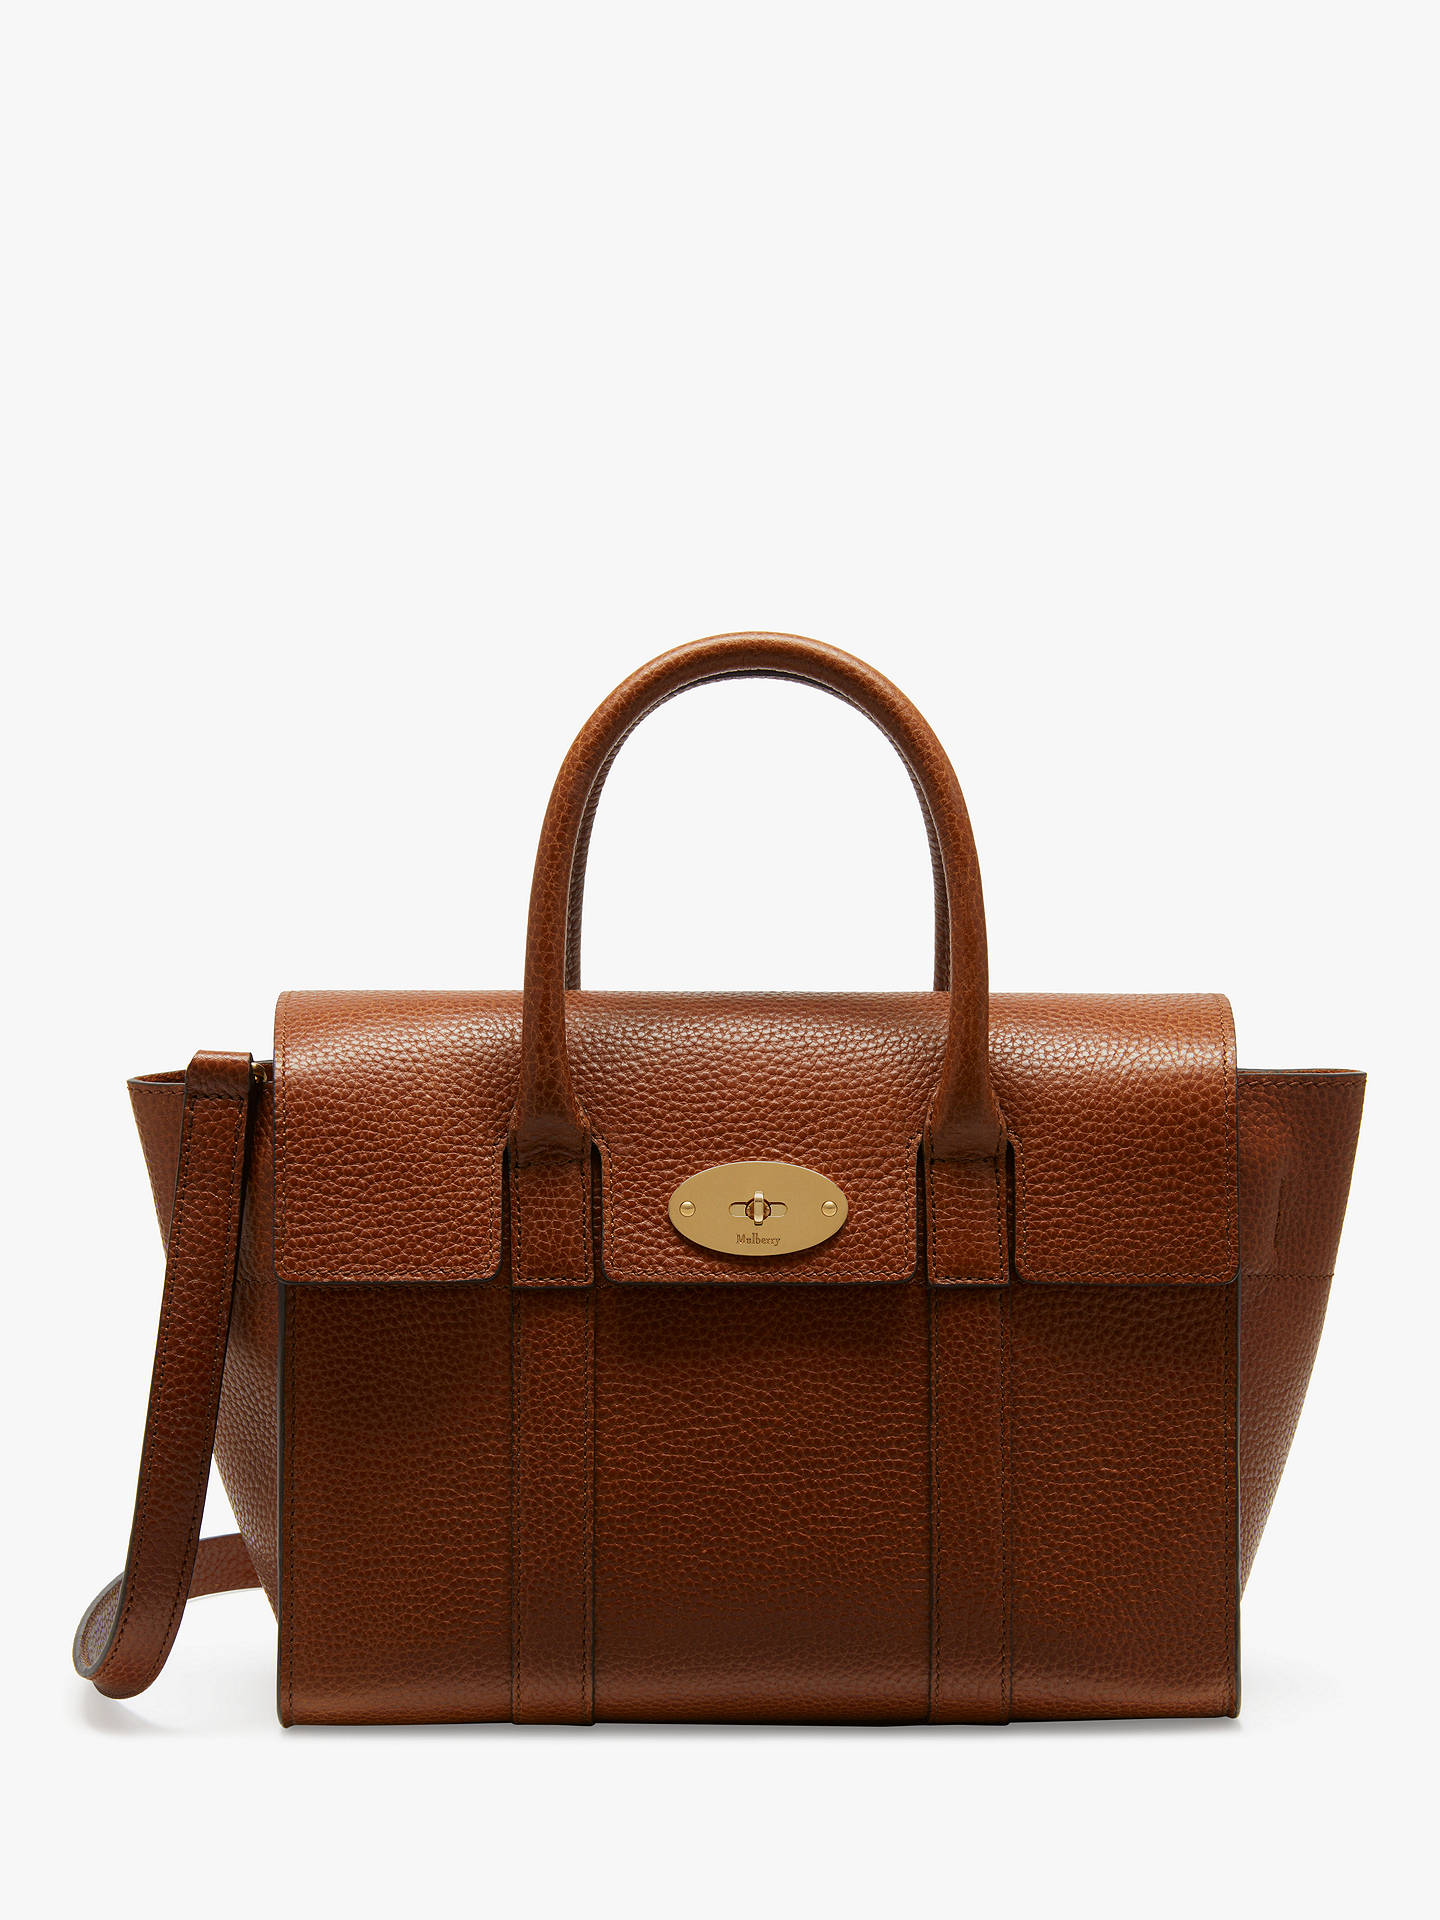 BuyMulberry Small Bayswater Grain Veg Tanned Leather Satchel Bag, Oak  Online at johnlewis.com ... 07c2f10d16